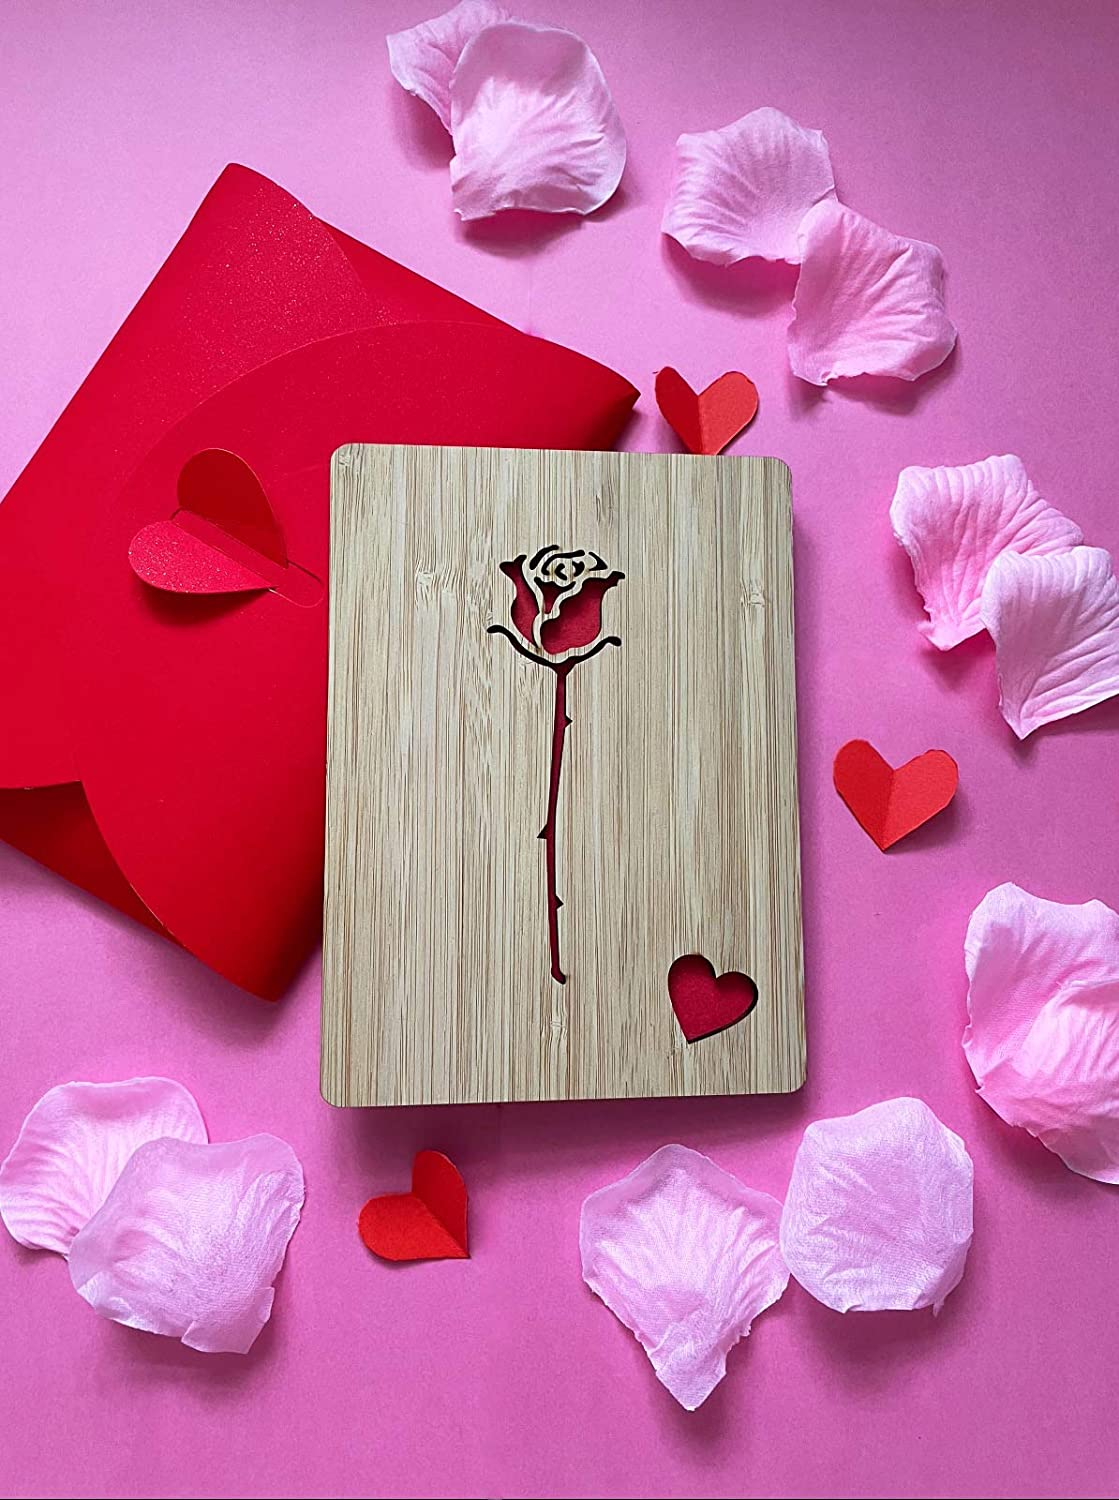 Wife Boyfriend Gift Girlfriend Birthday Husband Wedding Romantic Red Rose Love Card Wooden Romantic Card for Valentines Day,Anniversary Him for Her